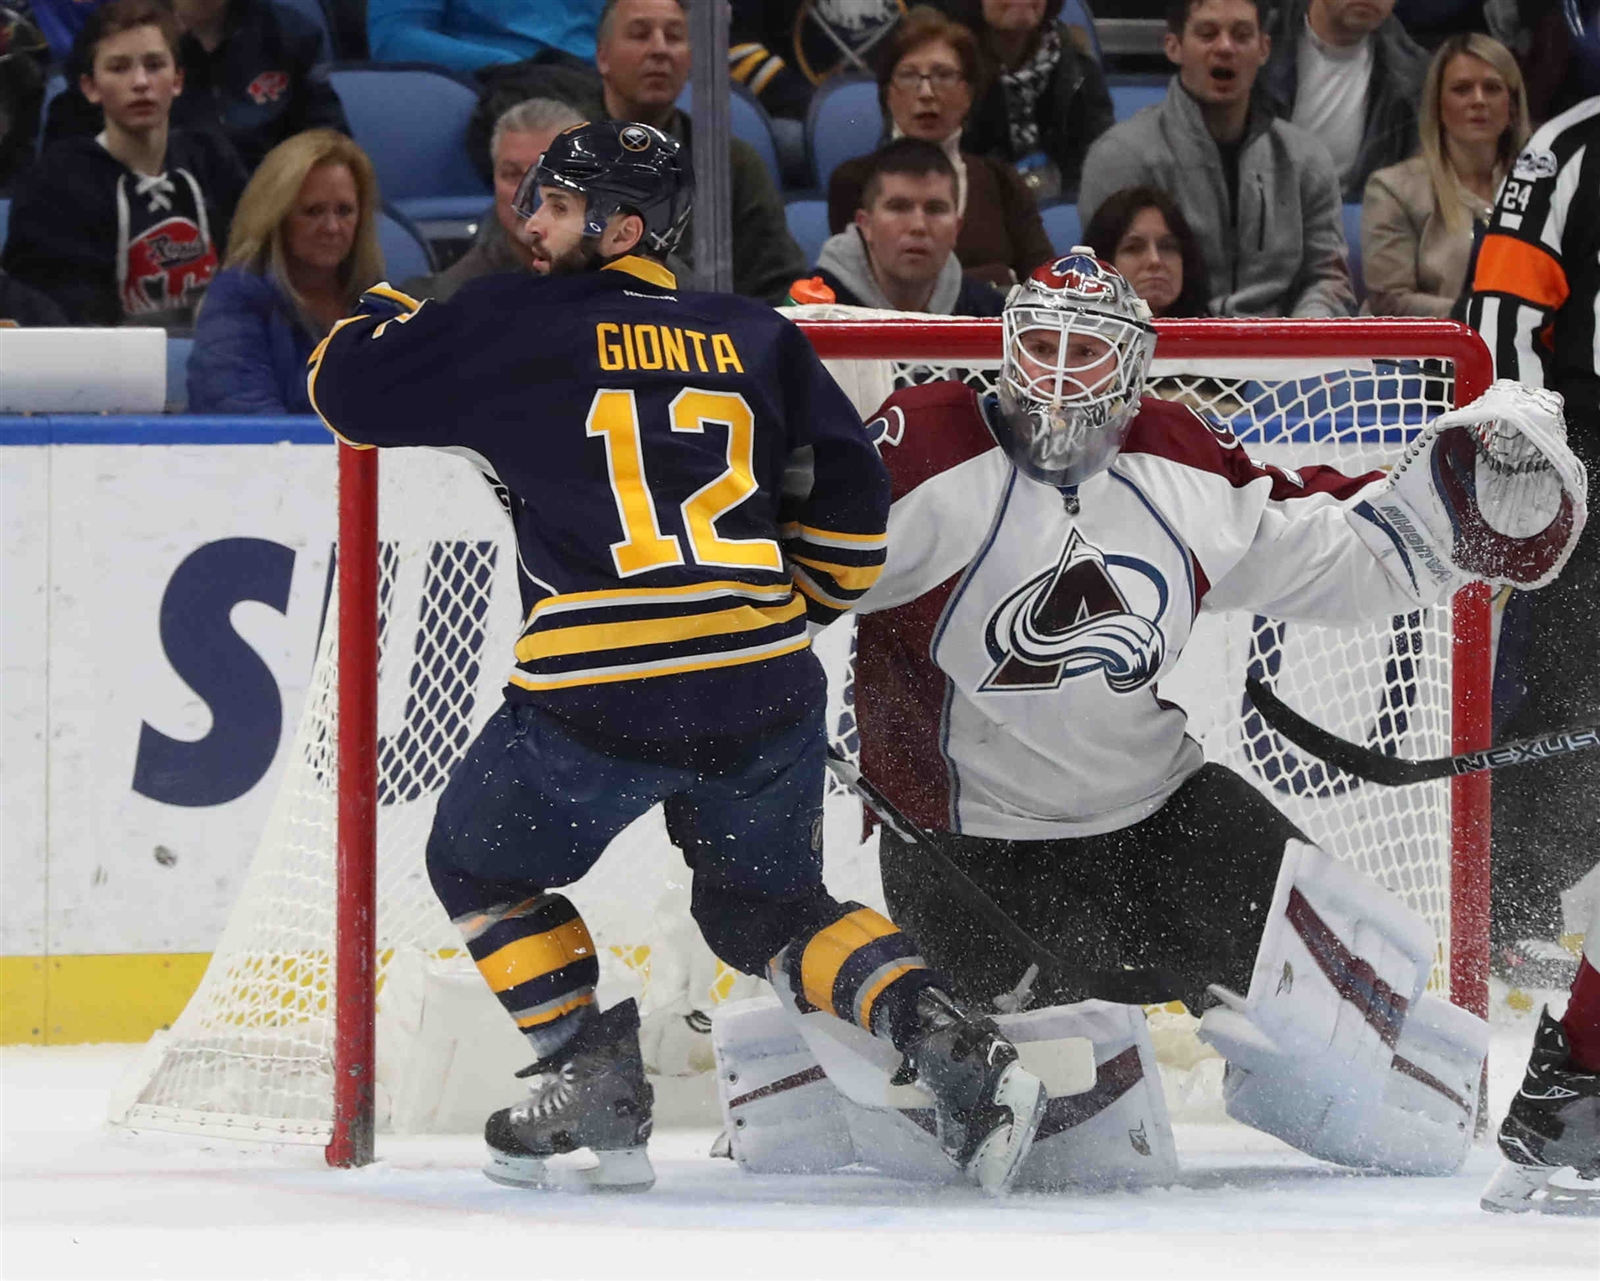 Buffalo Sabres right wing Brian Gionta (12) battles Colorado Avalanche goalie Calvin Pickard (31) for the puck in the first period.